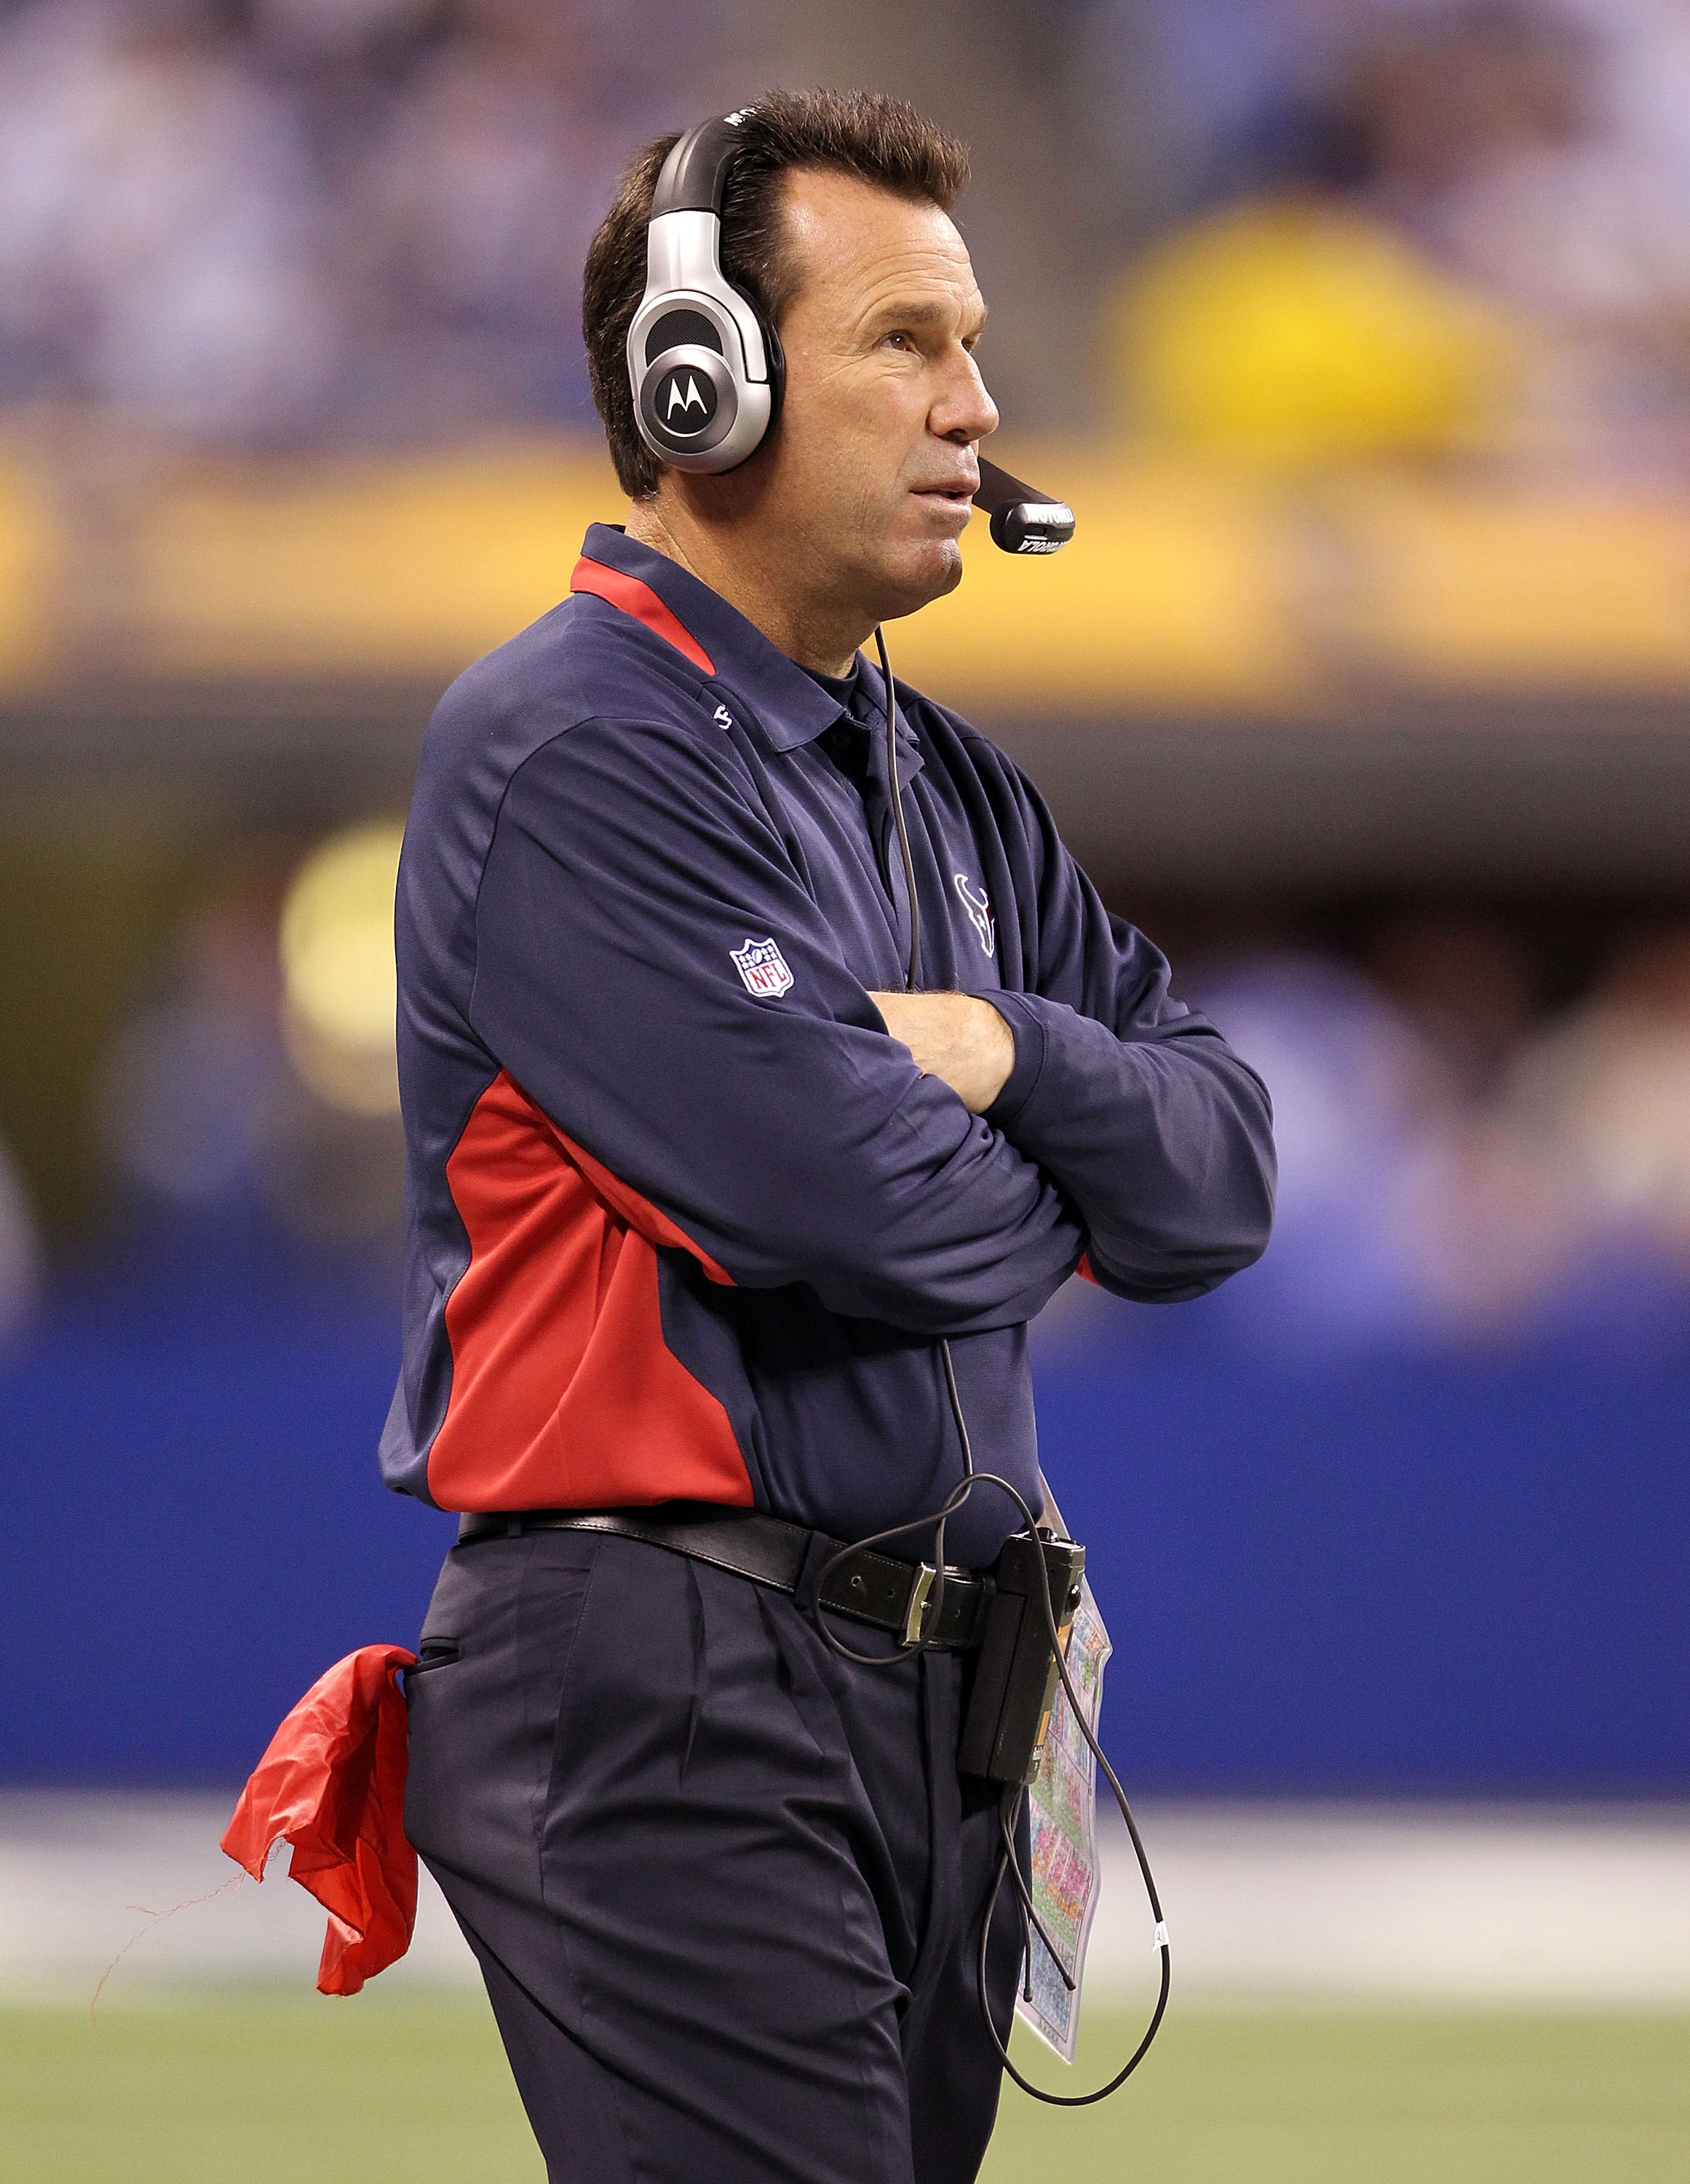 Texans head coach Gary Kubiak